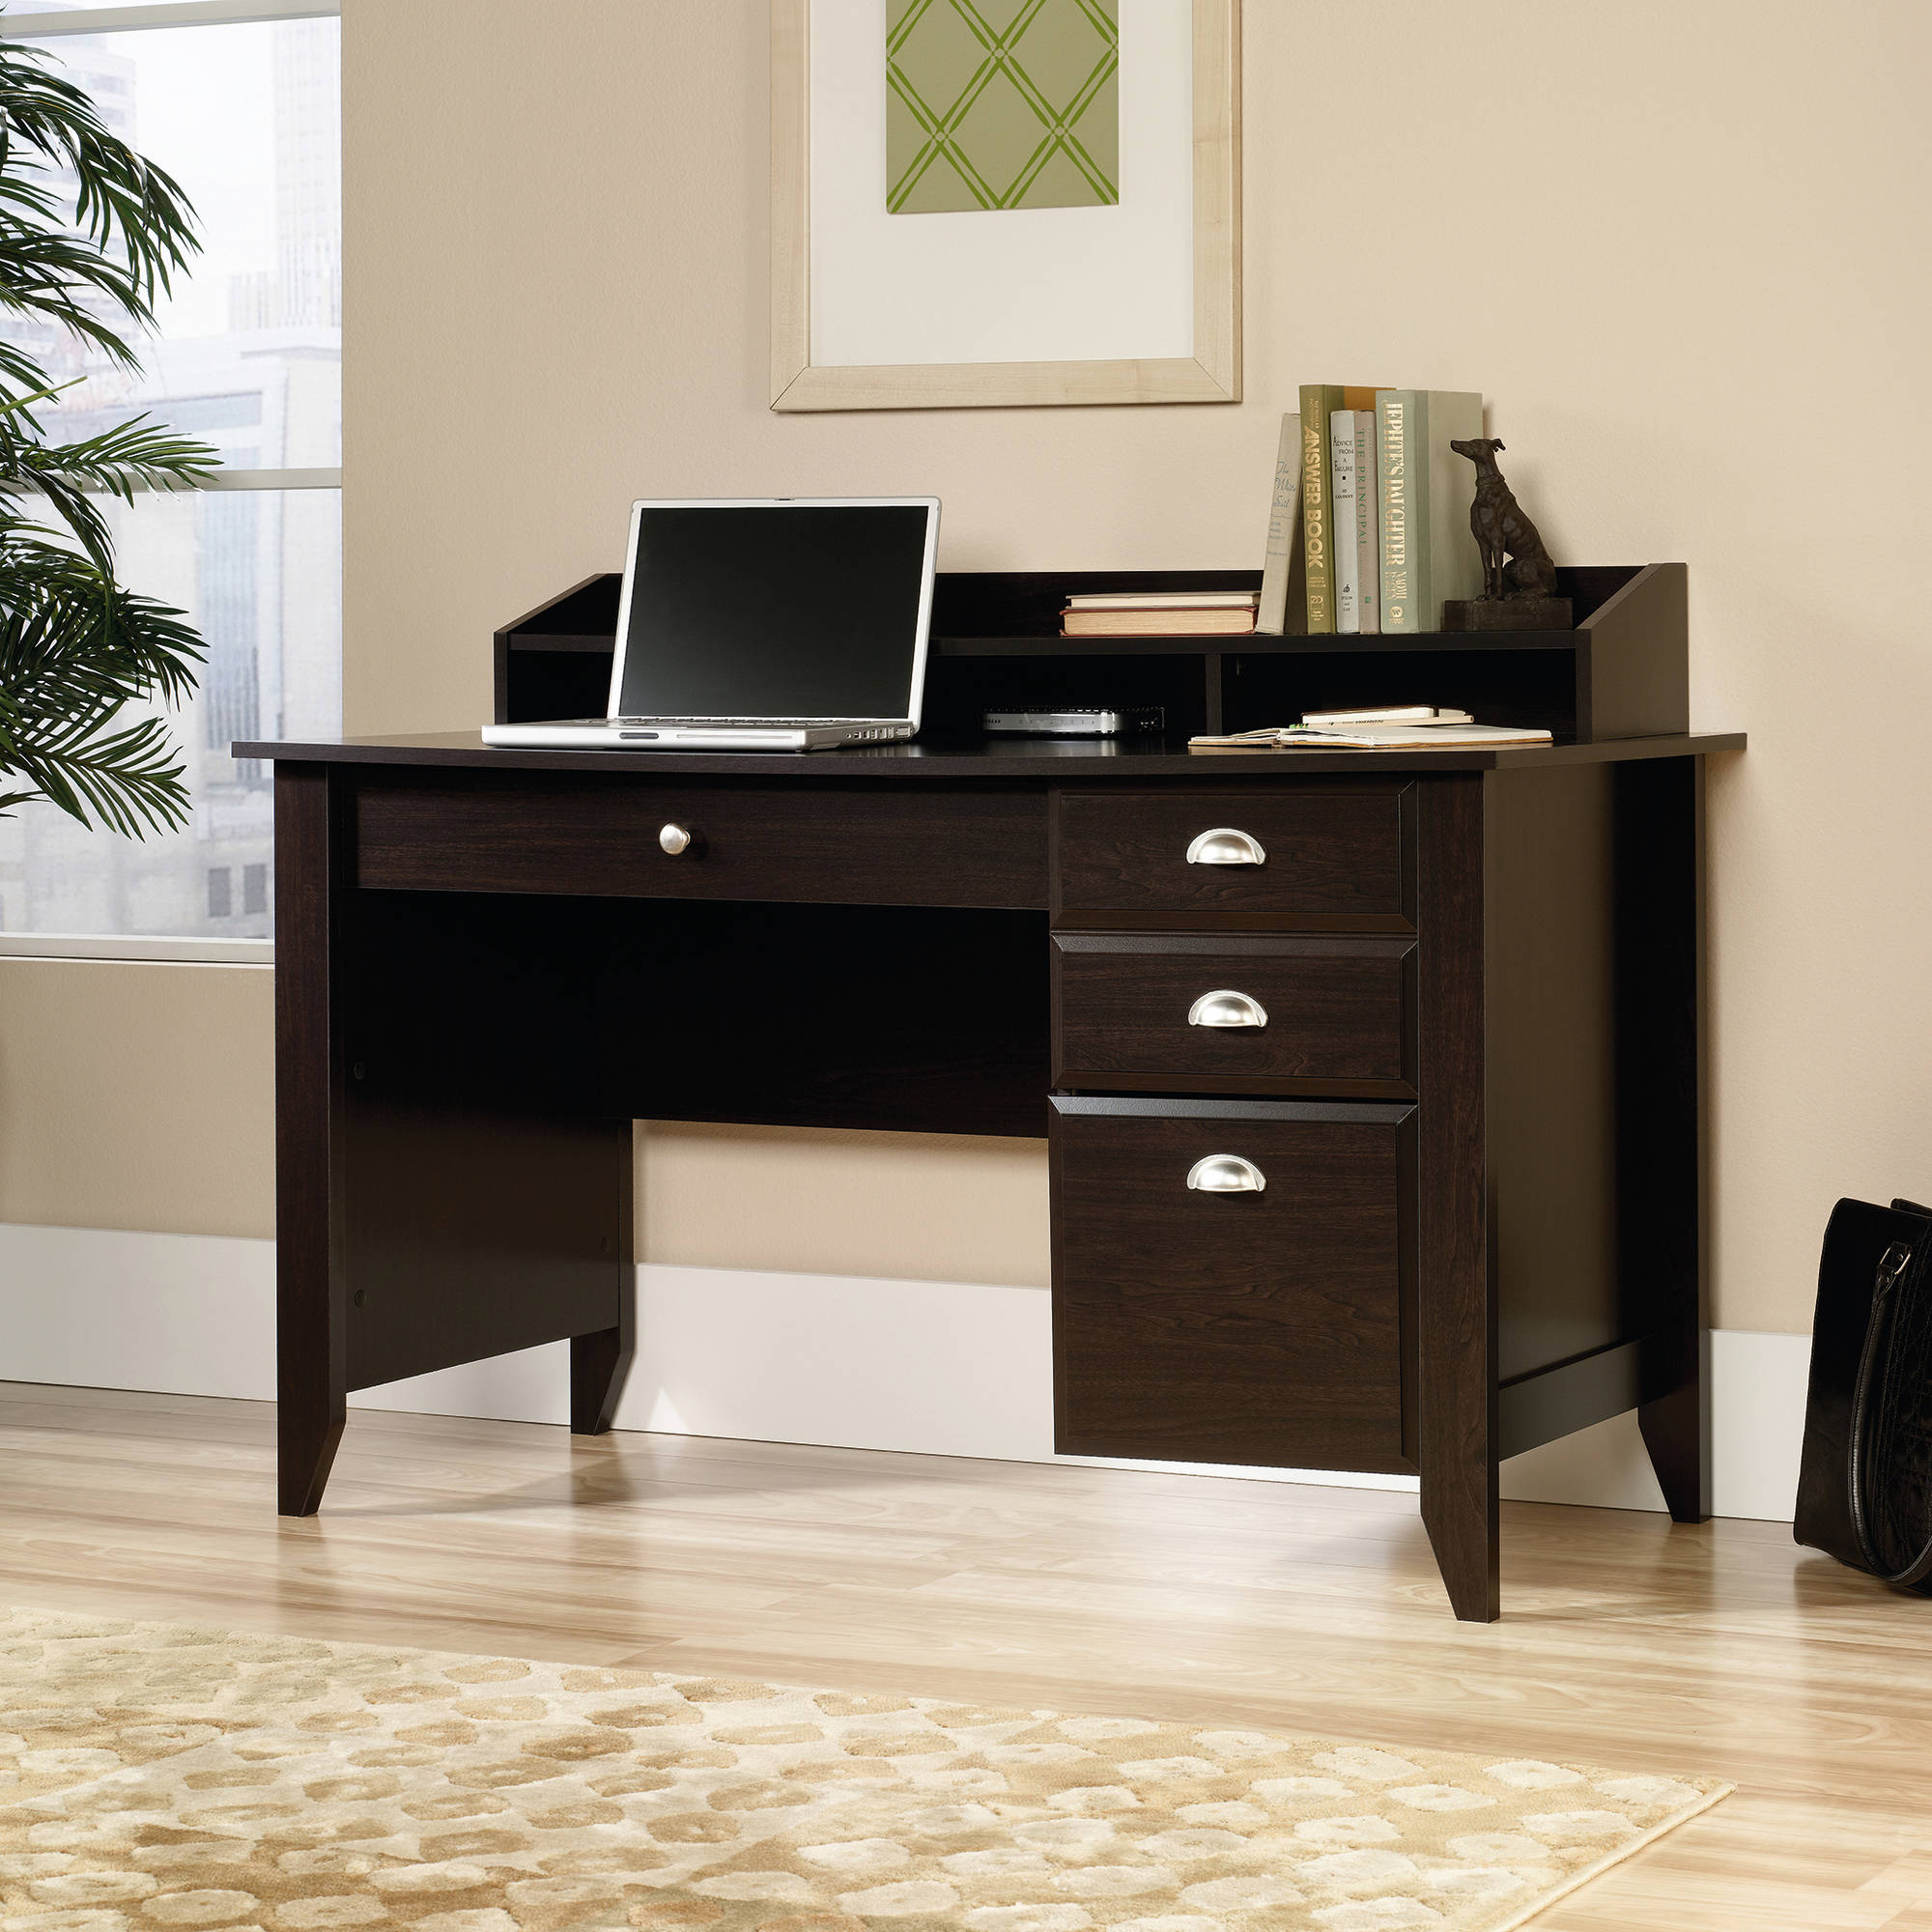 Sauder Computer Desks | Sauder Computer Desk | Desk with Filing Drawer